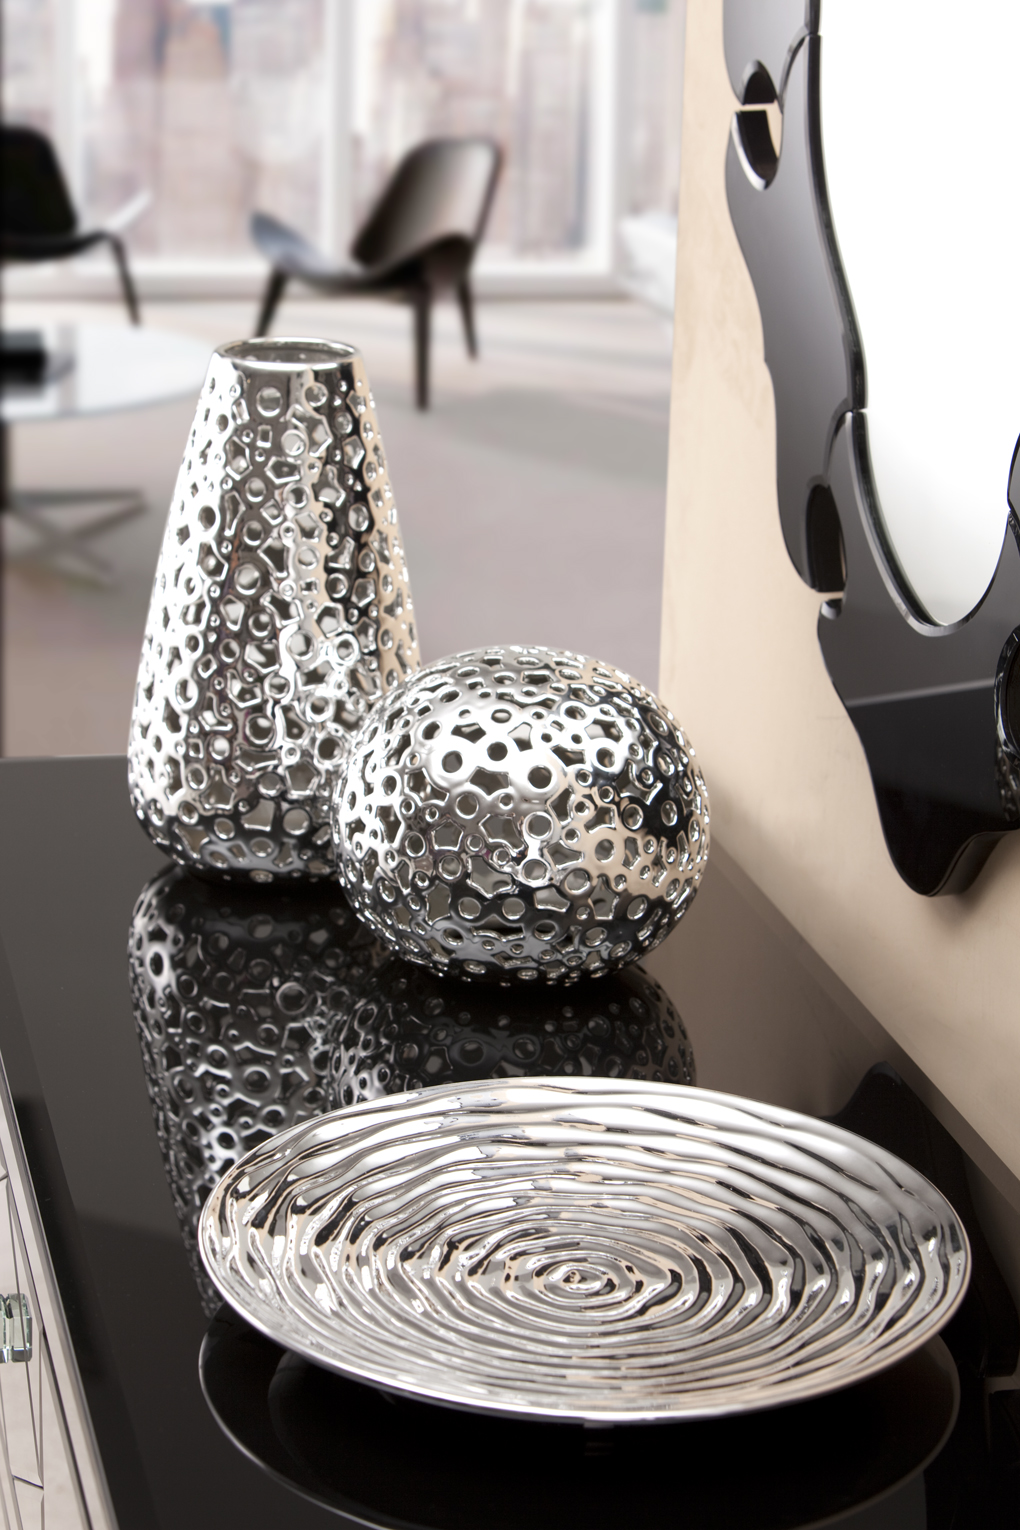 Design inspiration decorative accent pieces real life for Modern home accents accessories